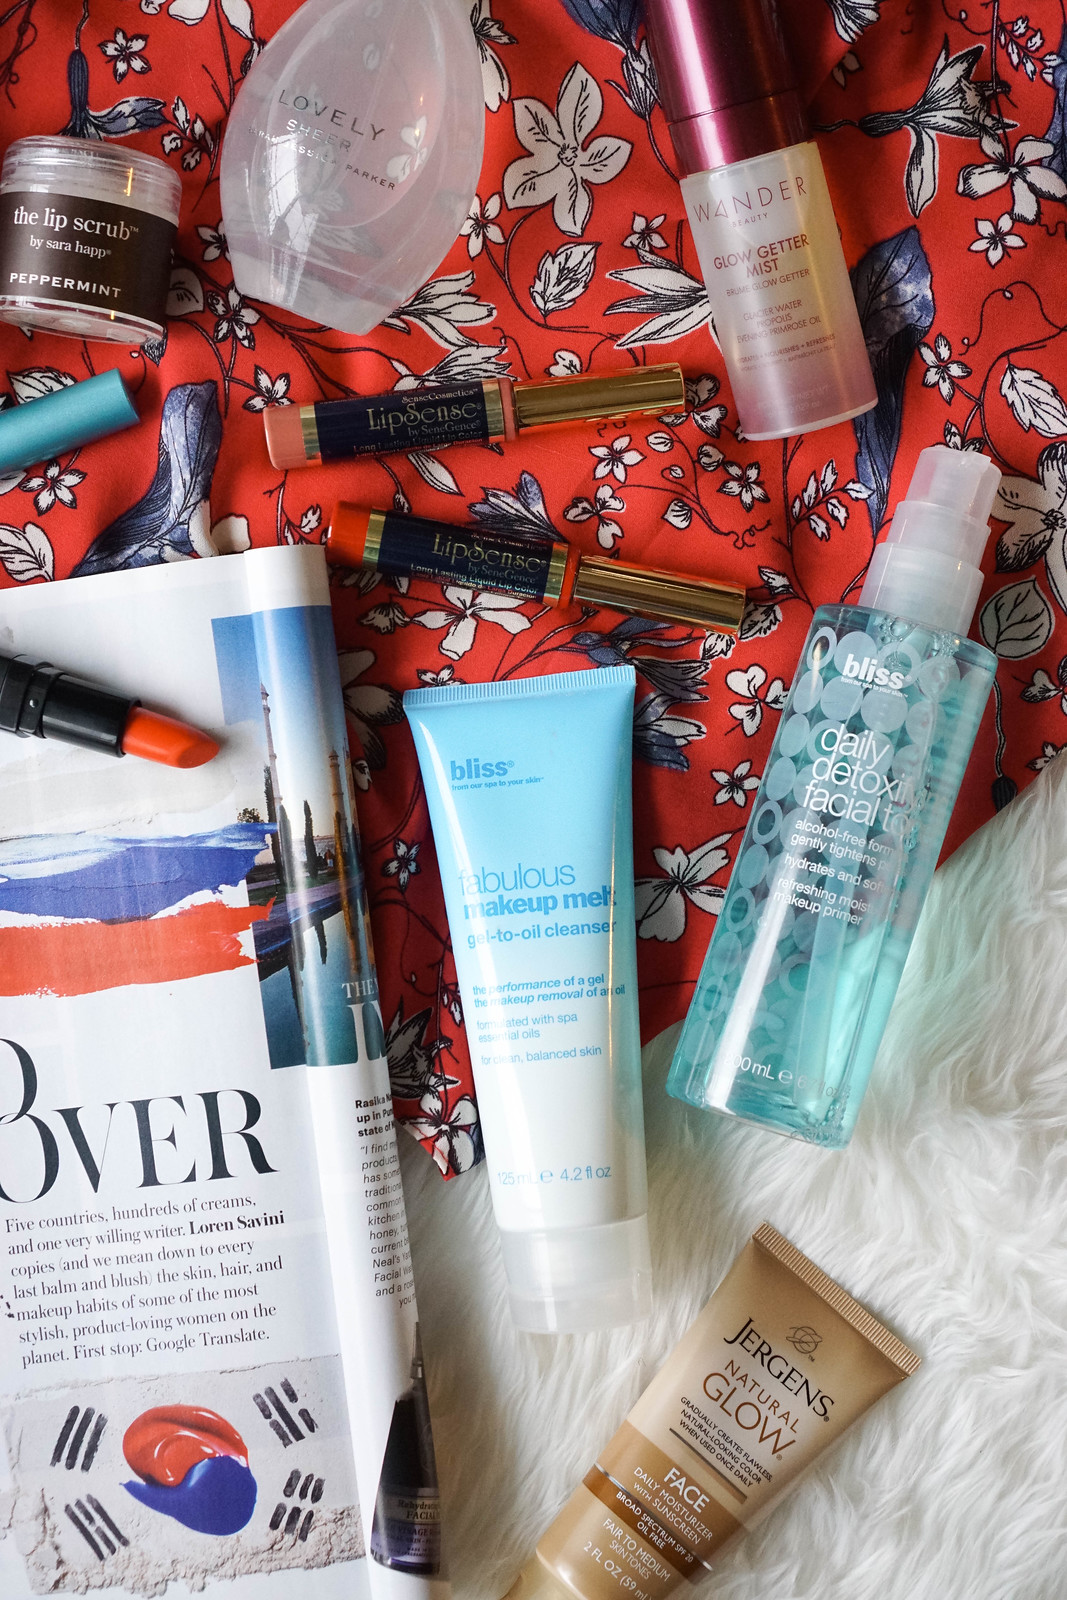 My May Beauty Essentials bliss fabulous Makeup Melt bliss Daily Detoxifying Facial Toner Review Living After Midnite Jackie Giardina